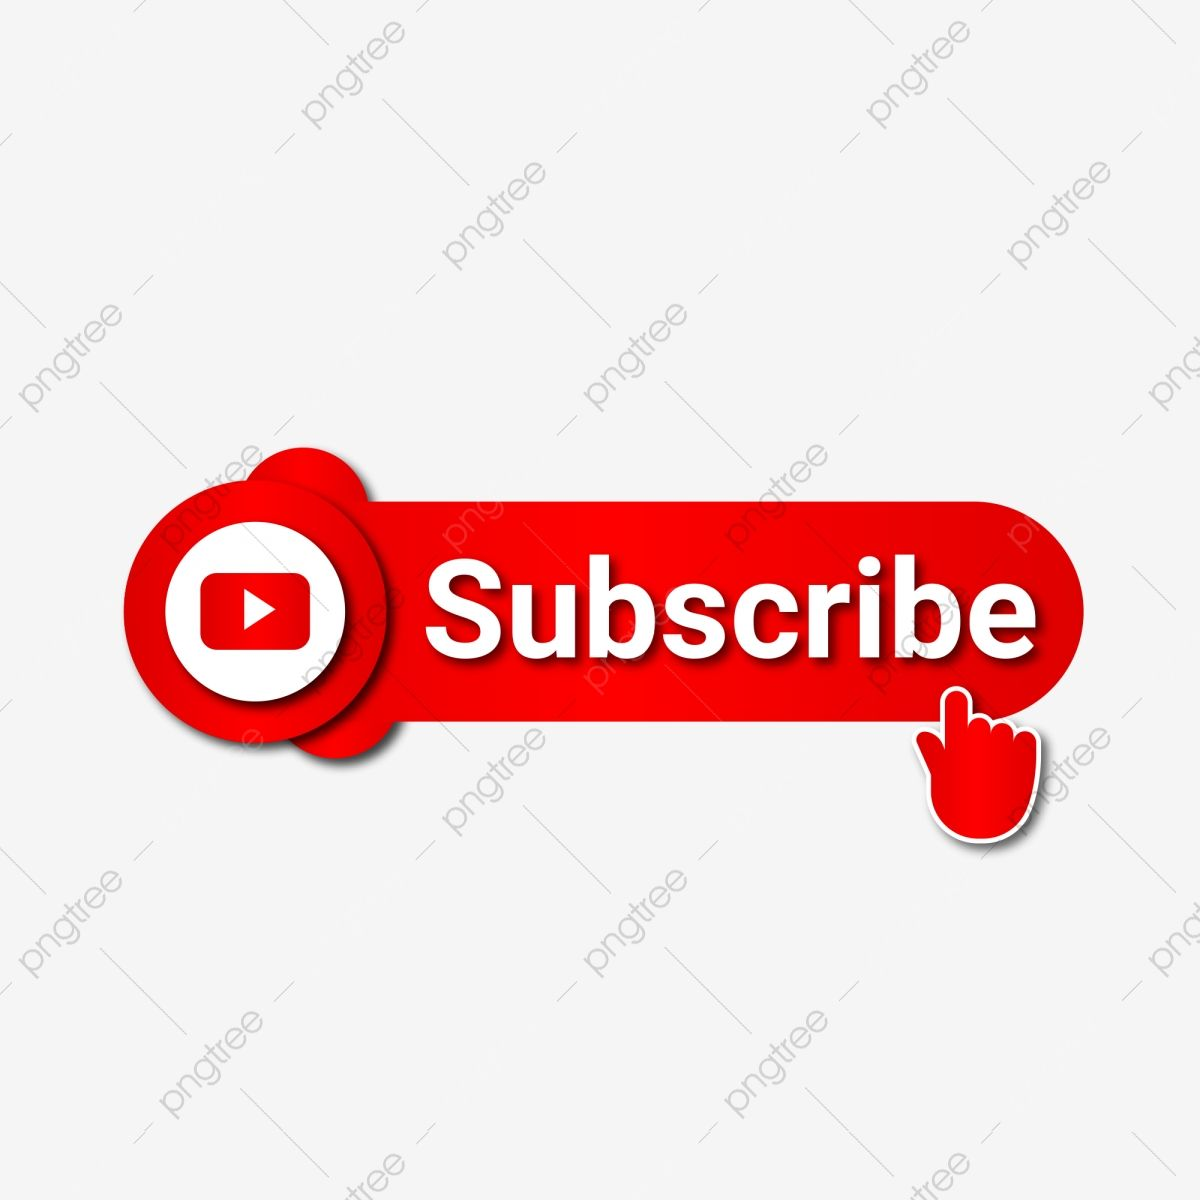 Youtube Subscribe Button Youtube Youtube Subscribe Youtube Png Png And Vector With Transparent Background For Free Download Youtube Social Media Icons Youtube Editing